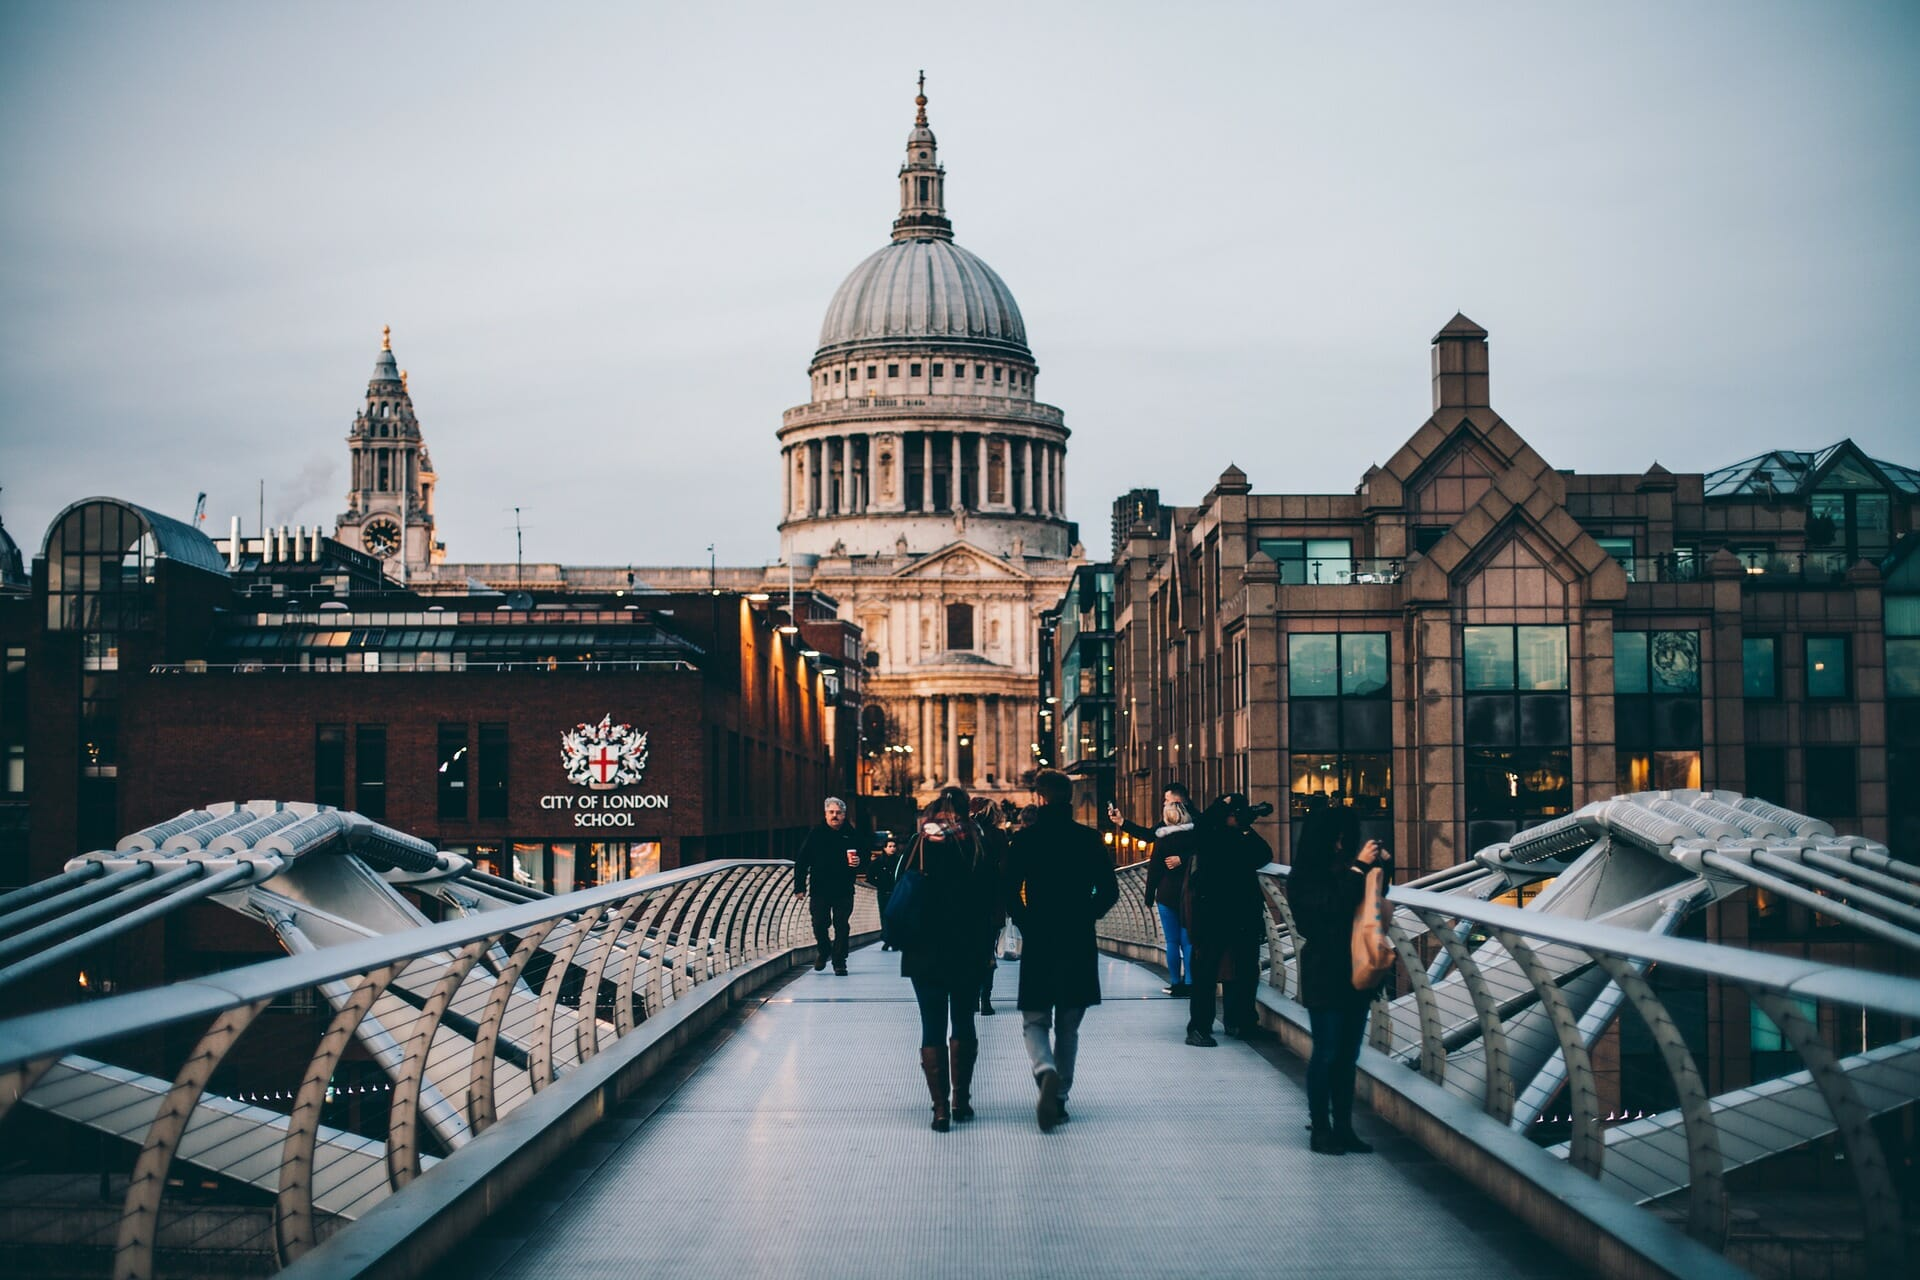 People walking on a bridge with St Paul's cathedral in the background